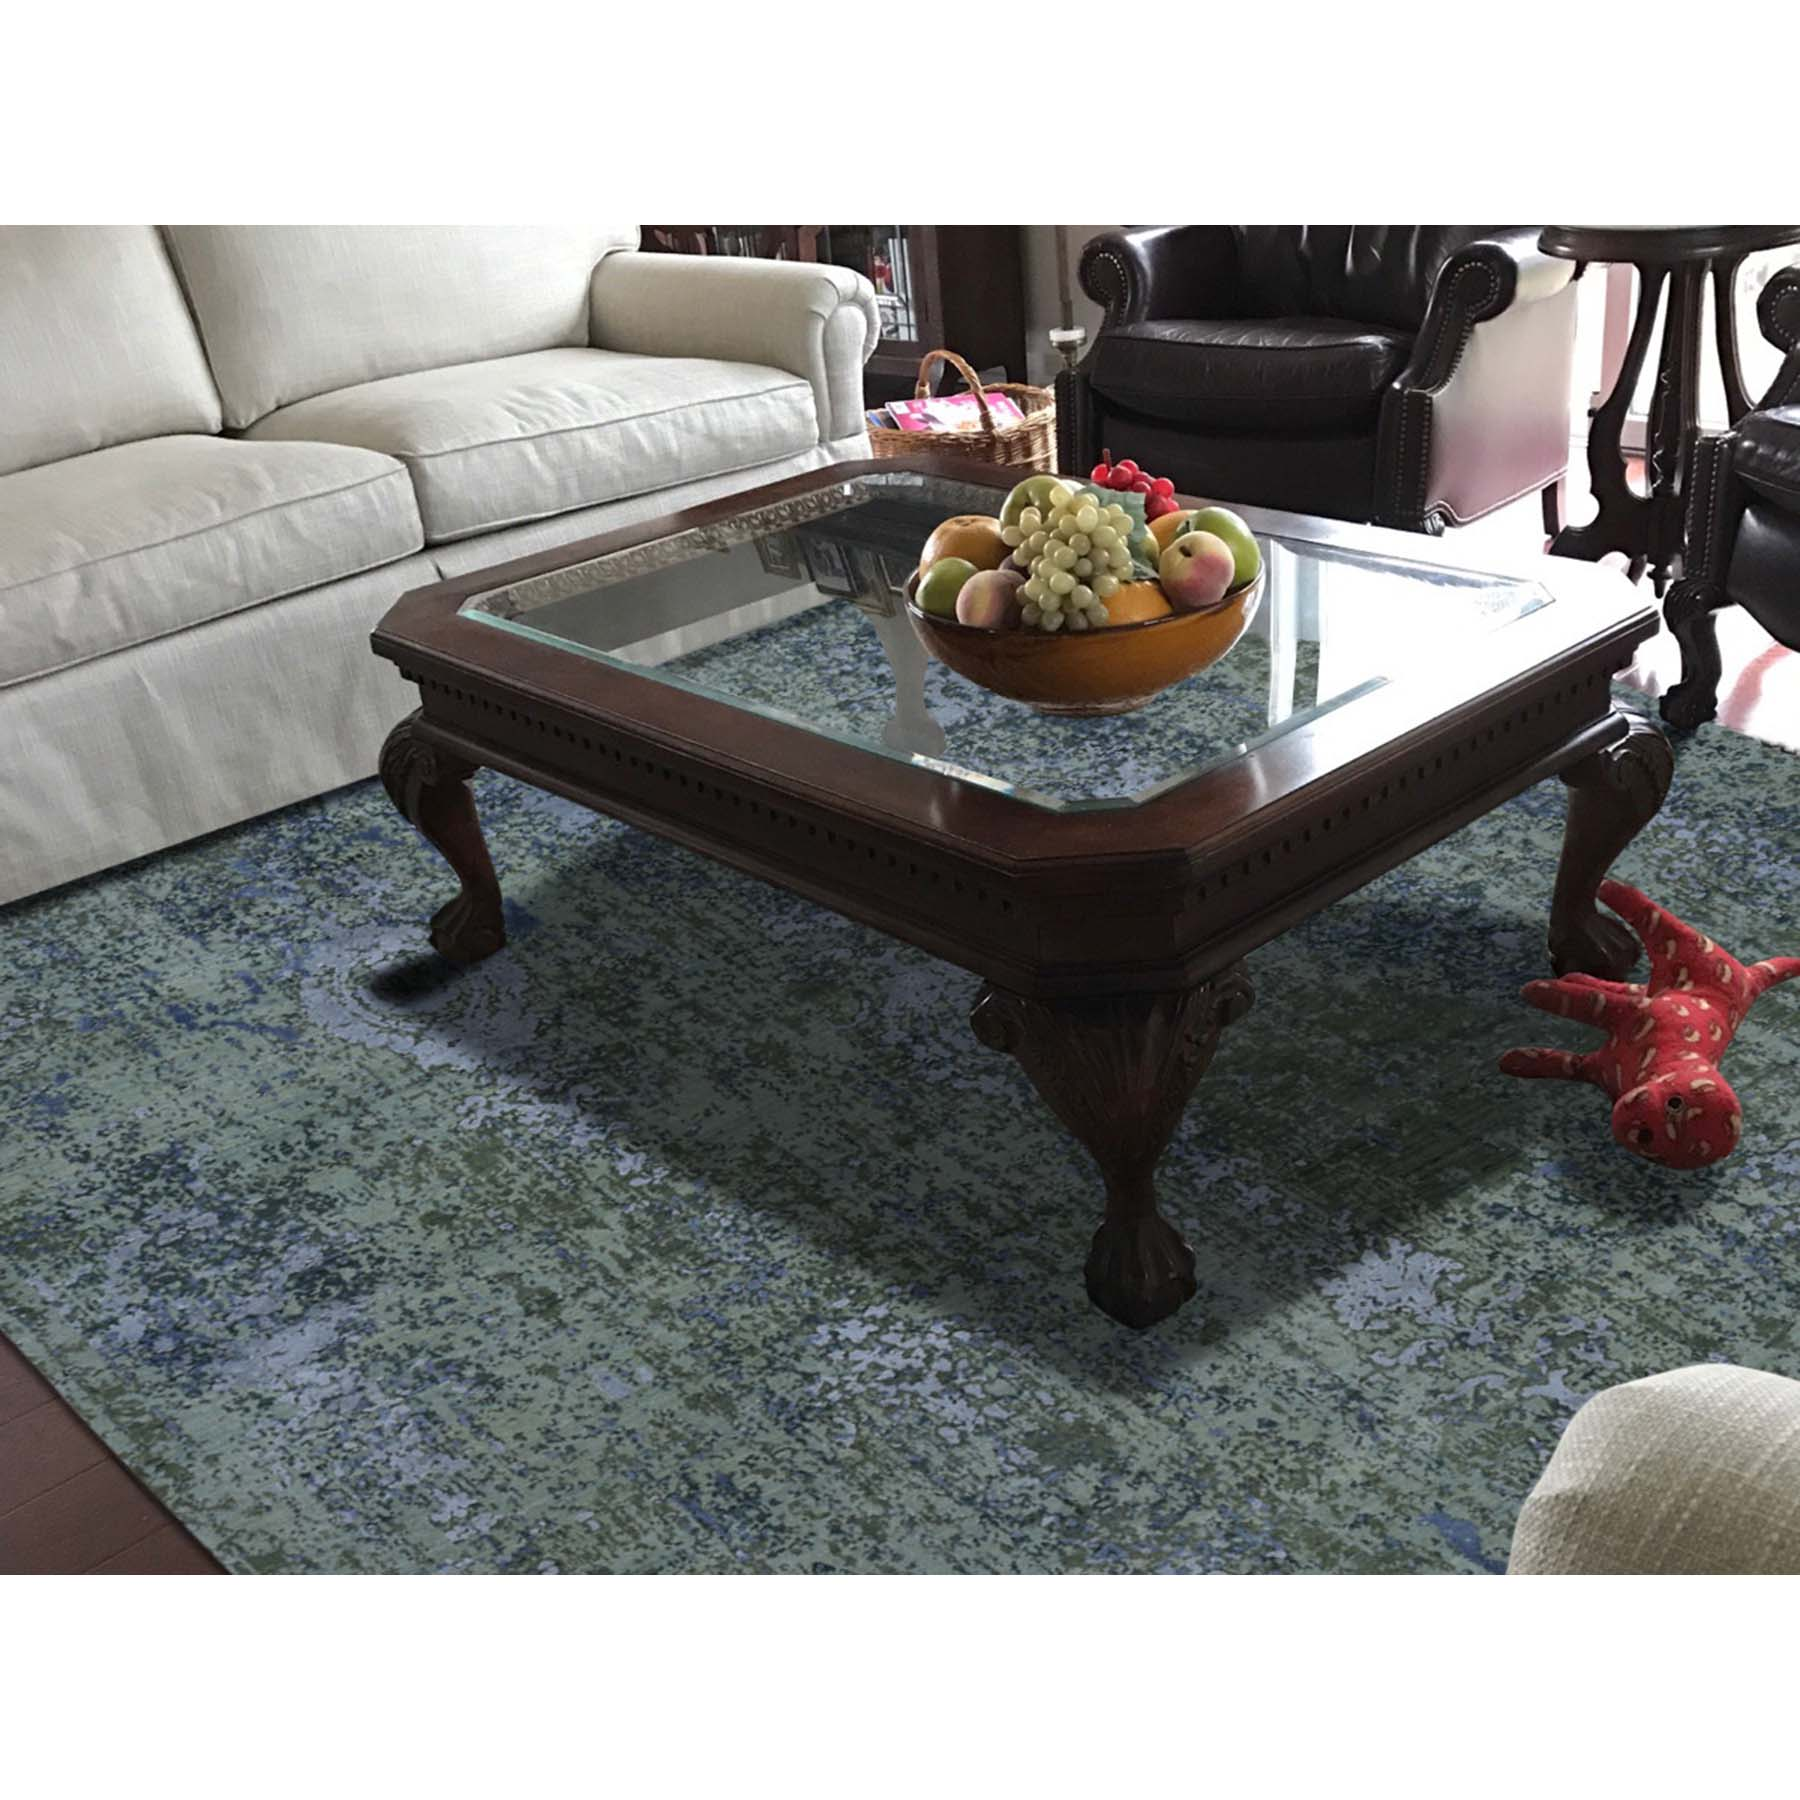 8-1 x10- Pure Silk Modern Abstract Design Hand-Knotted Rug